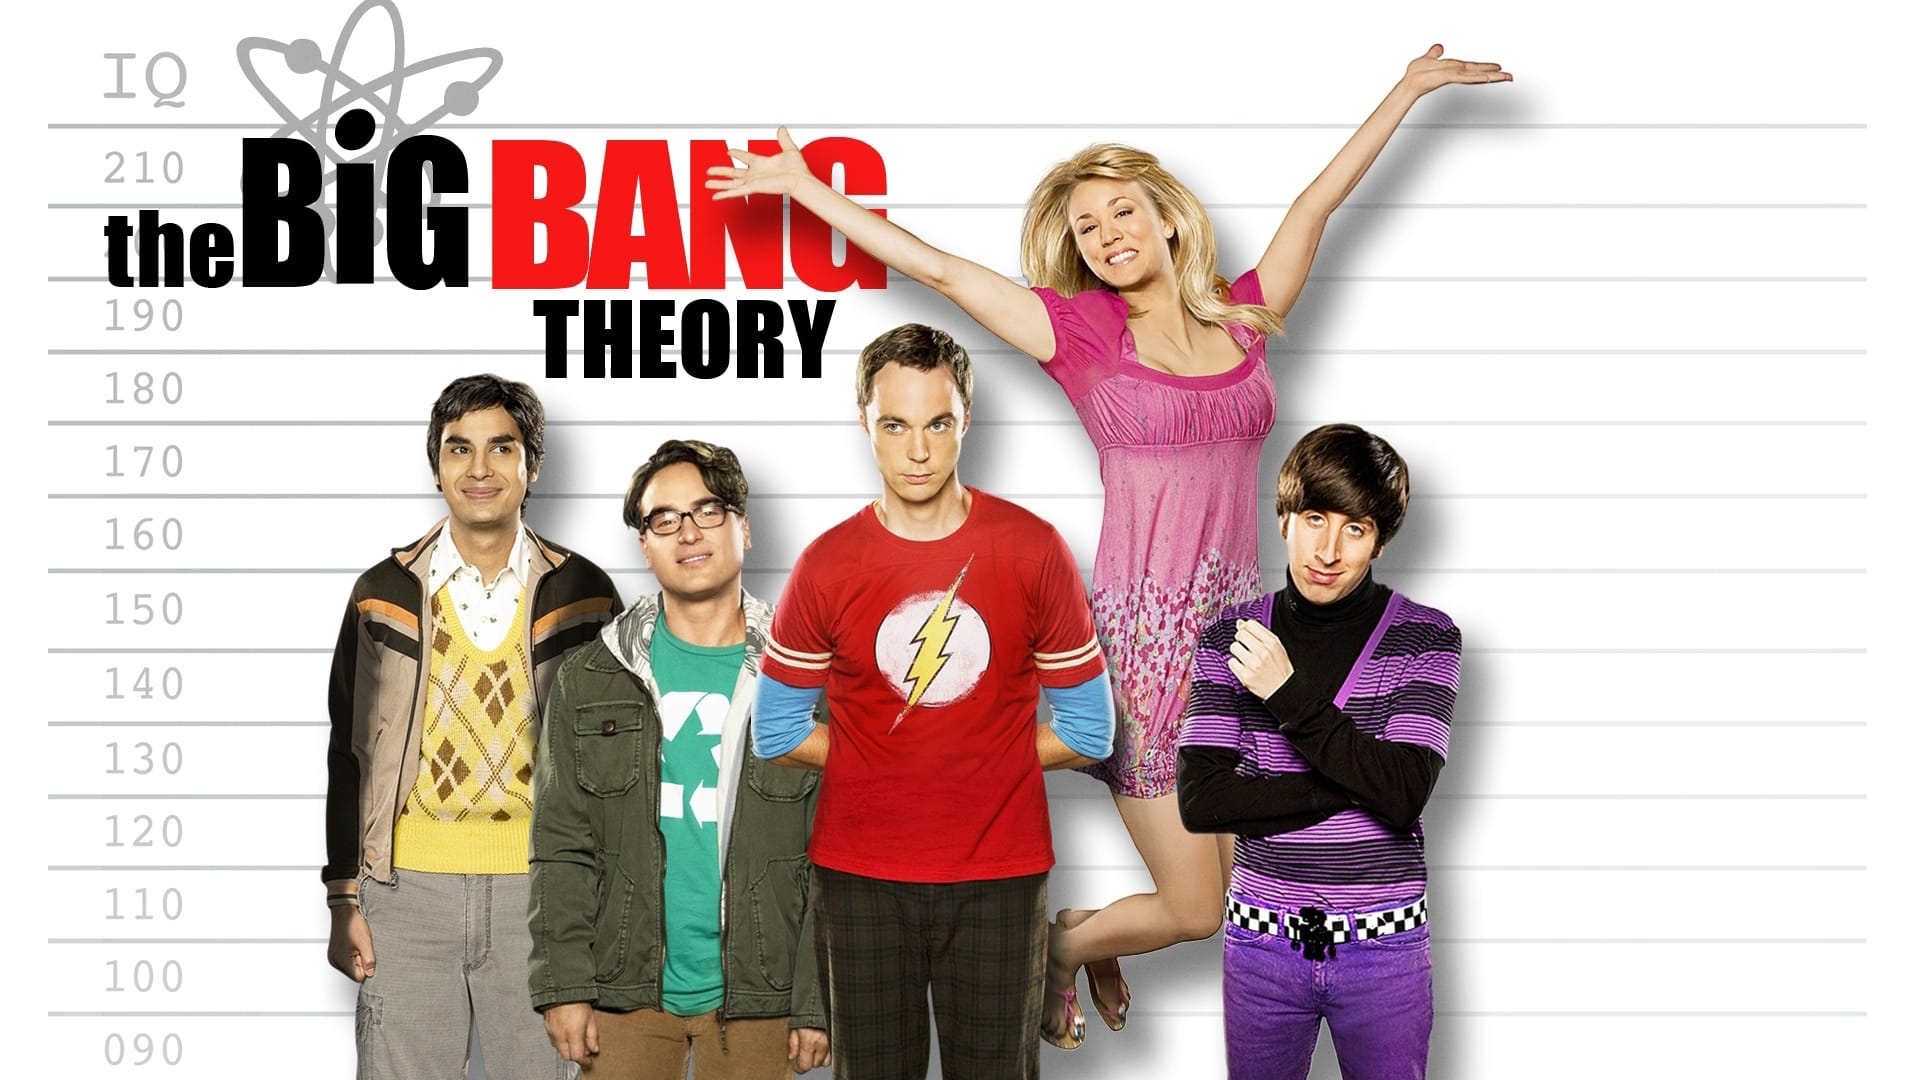 Big Bang Theory Bettwäsche Series Online Watch The Big Bang Theory Online